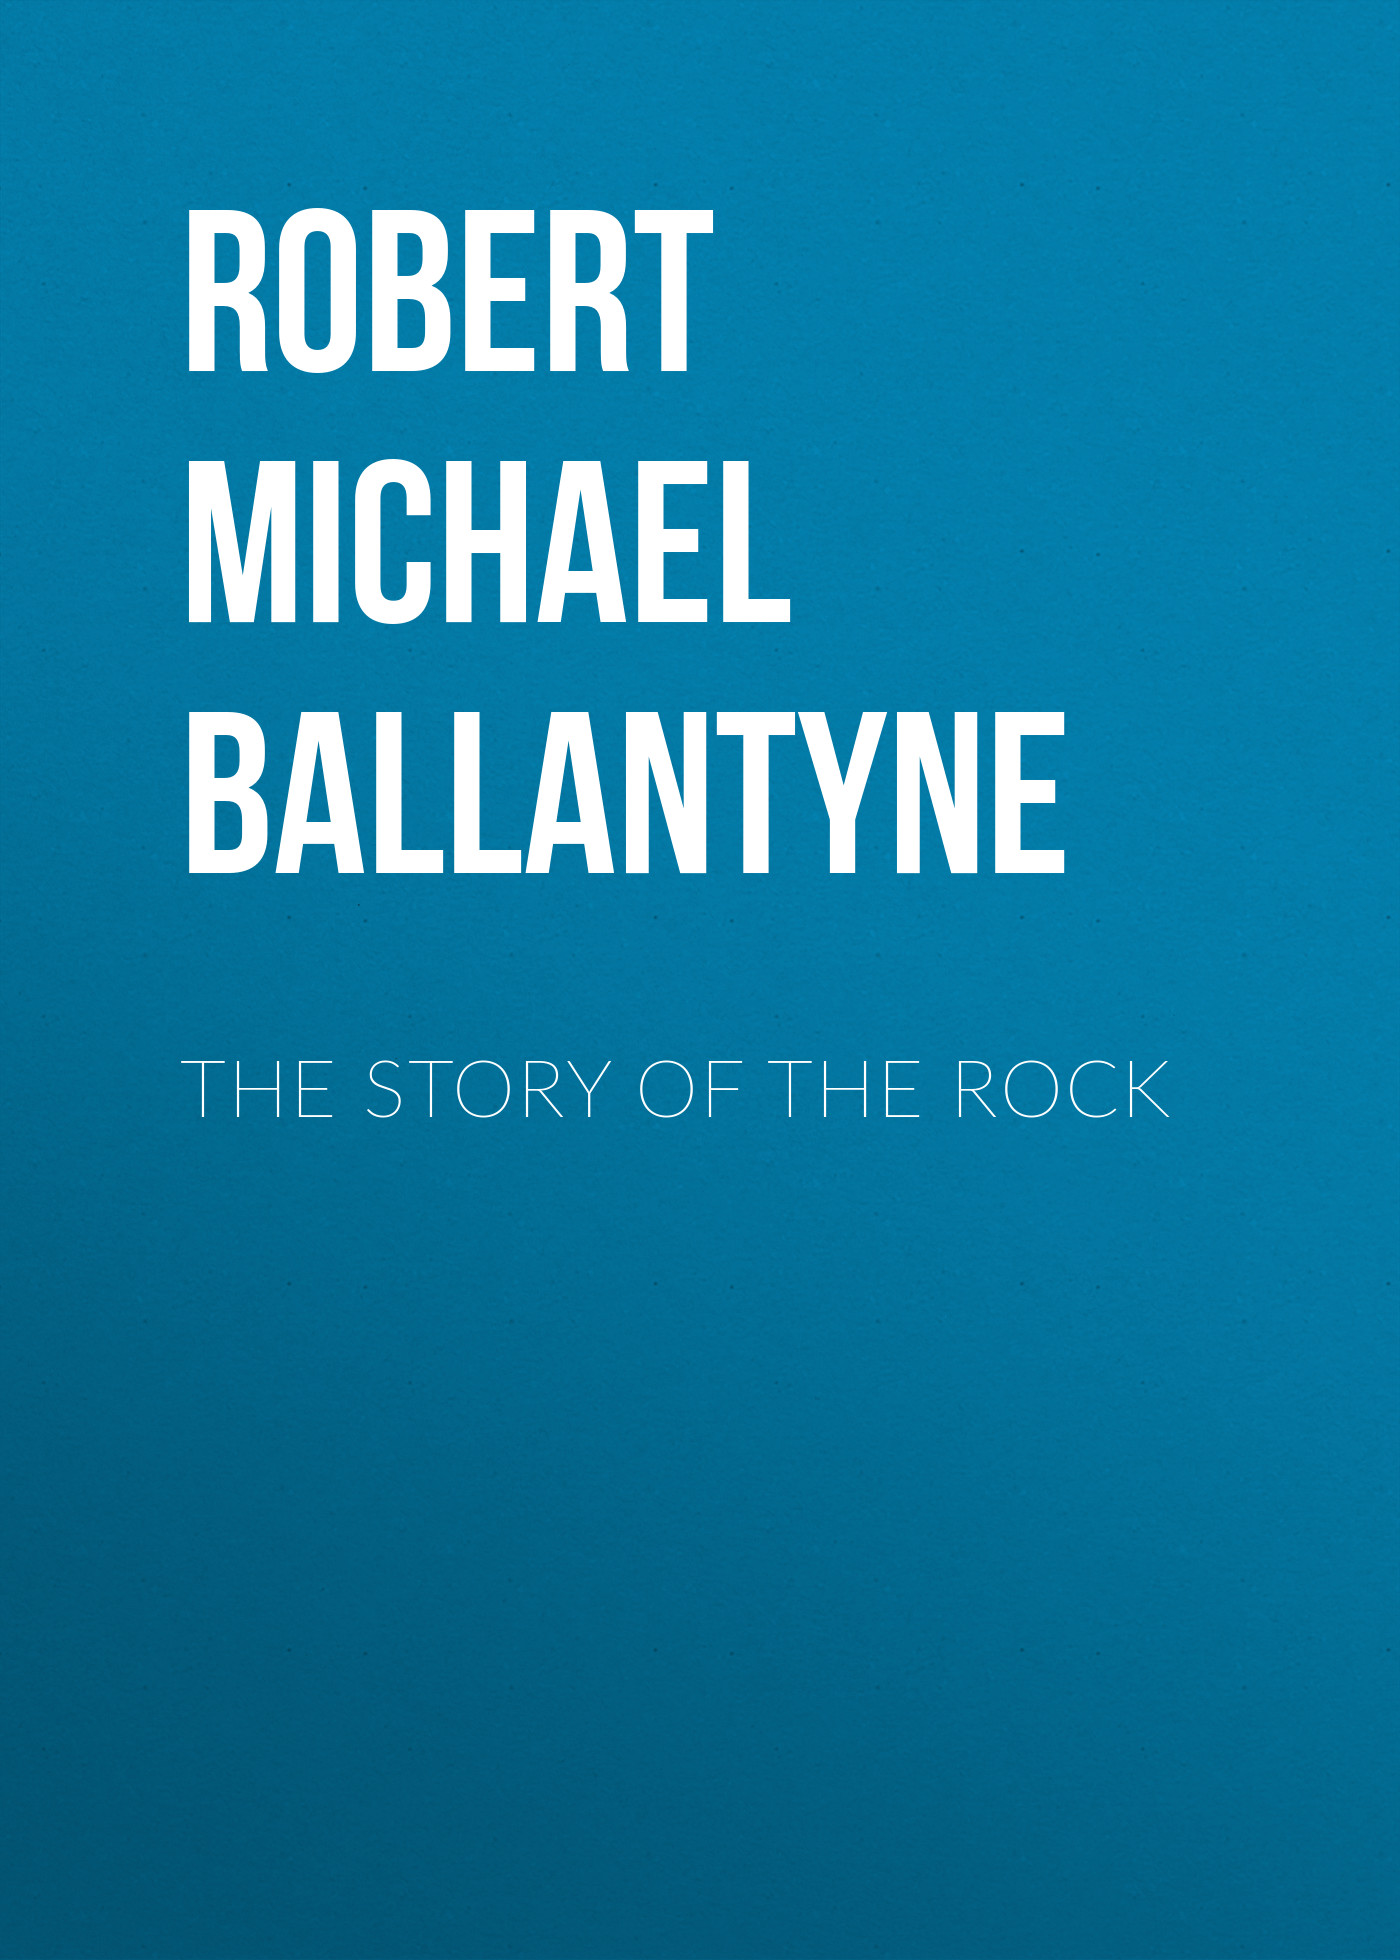 лучшая цена Robert Michael Ballantyne The Story of the Rock